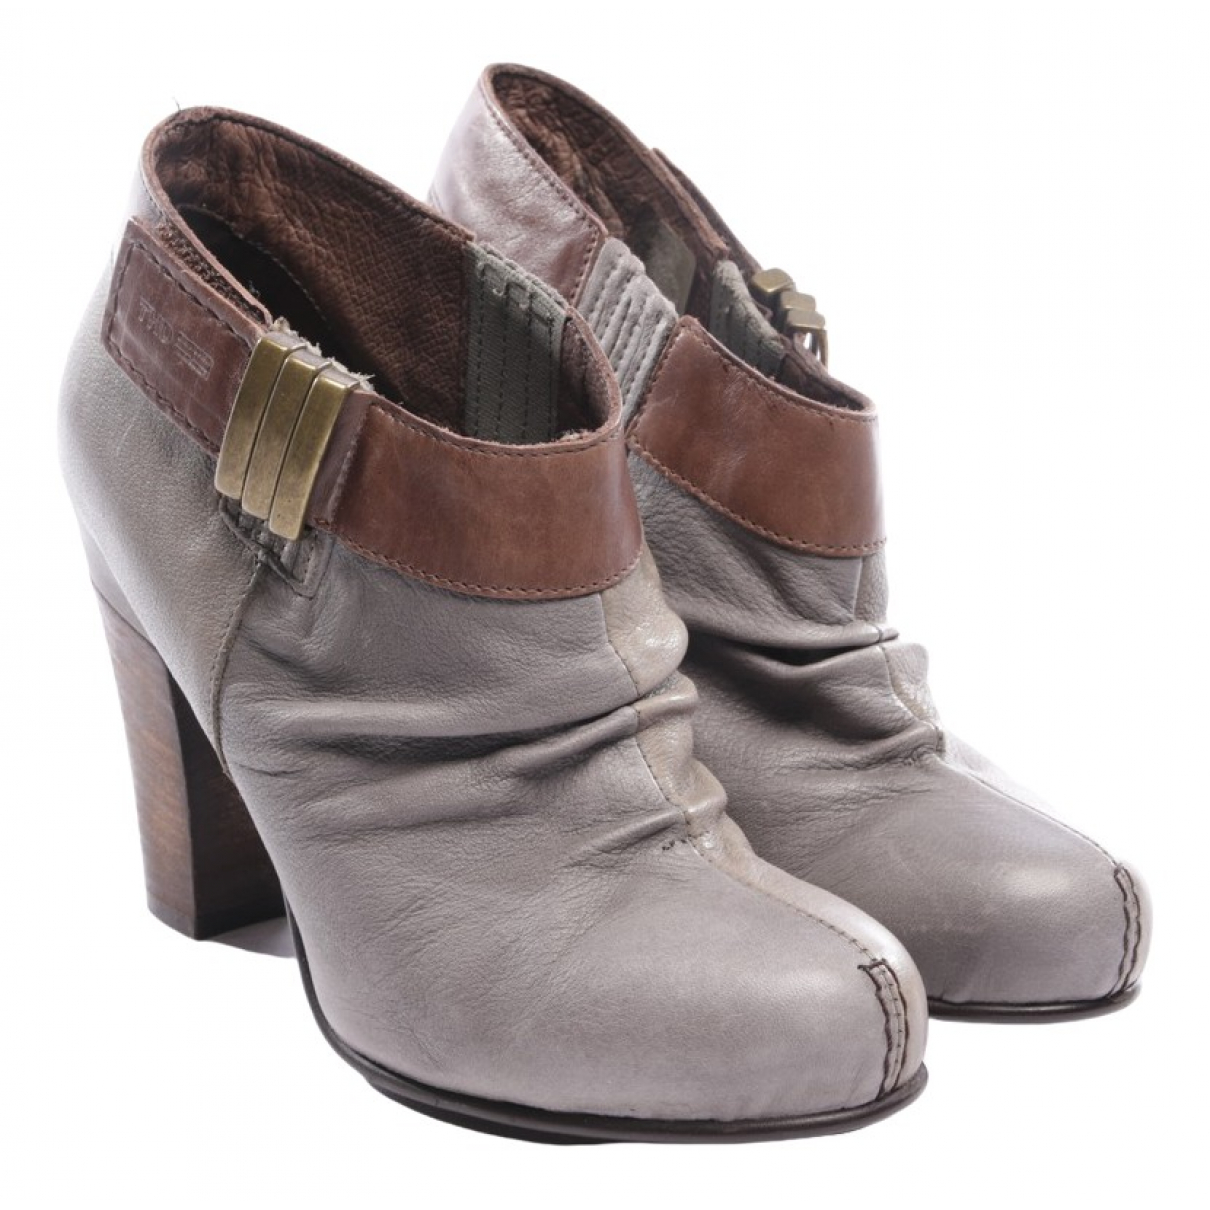 Tommy Hilfiger \N Grey Leather Ankle boots for Women 39 EU